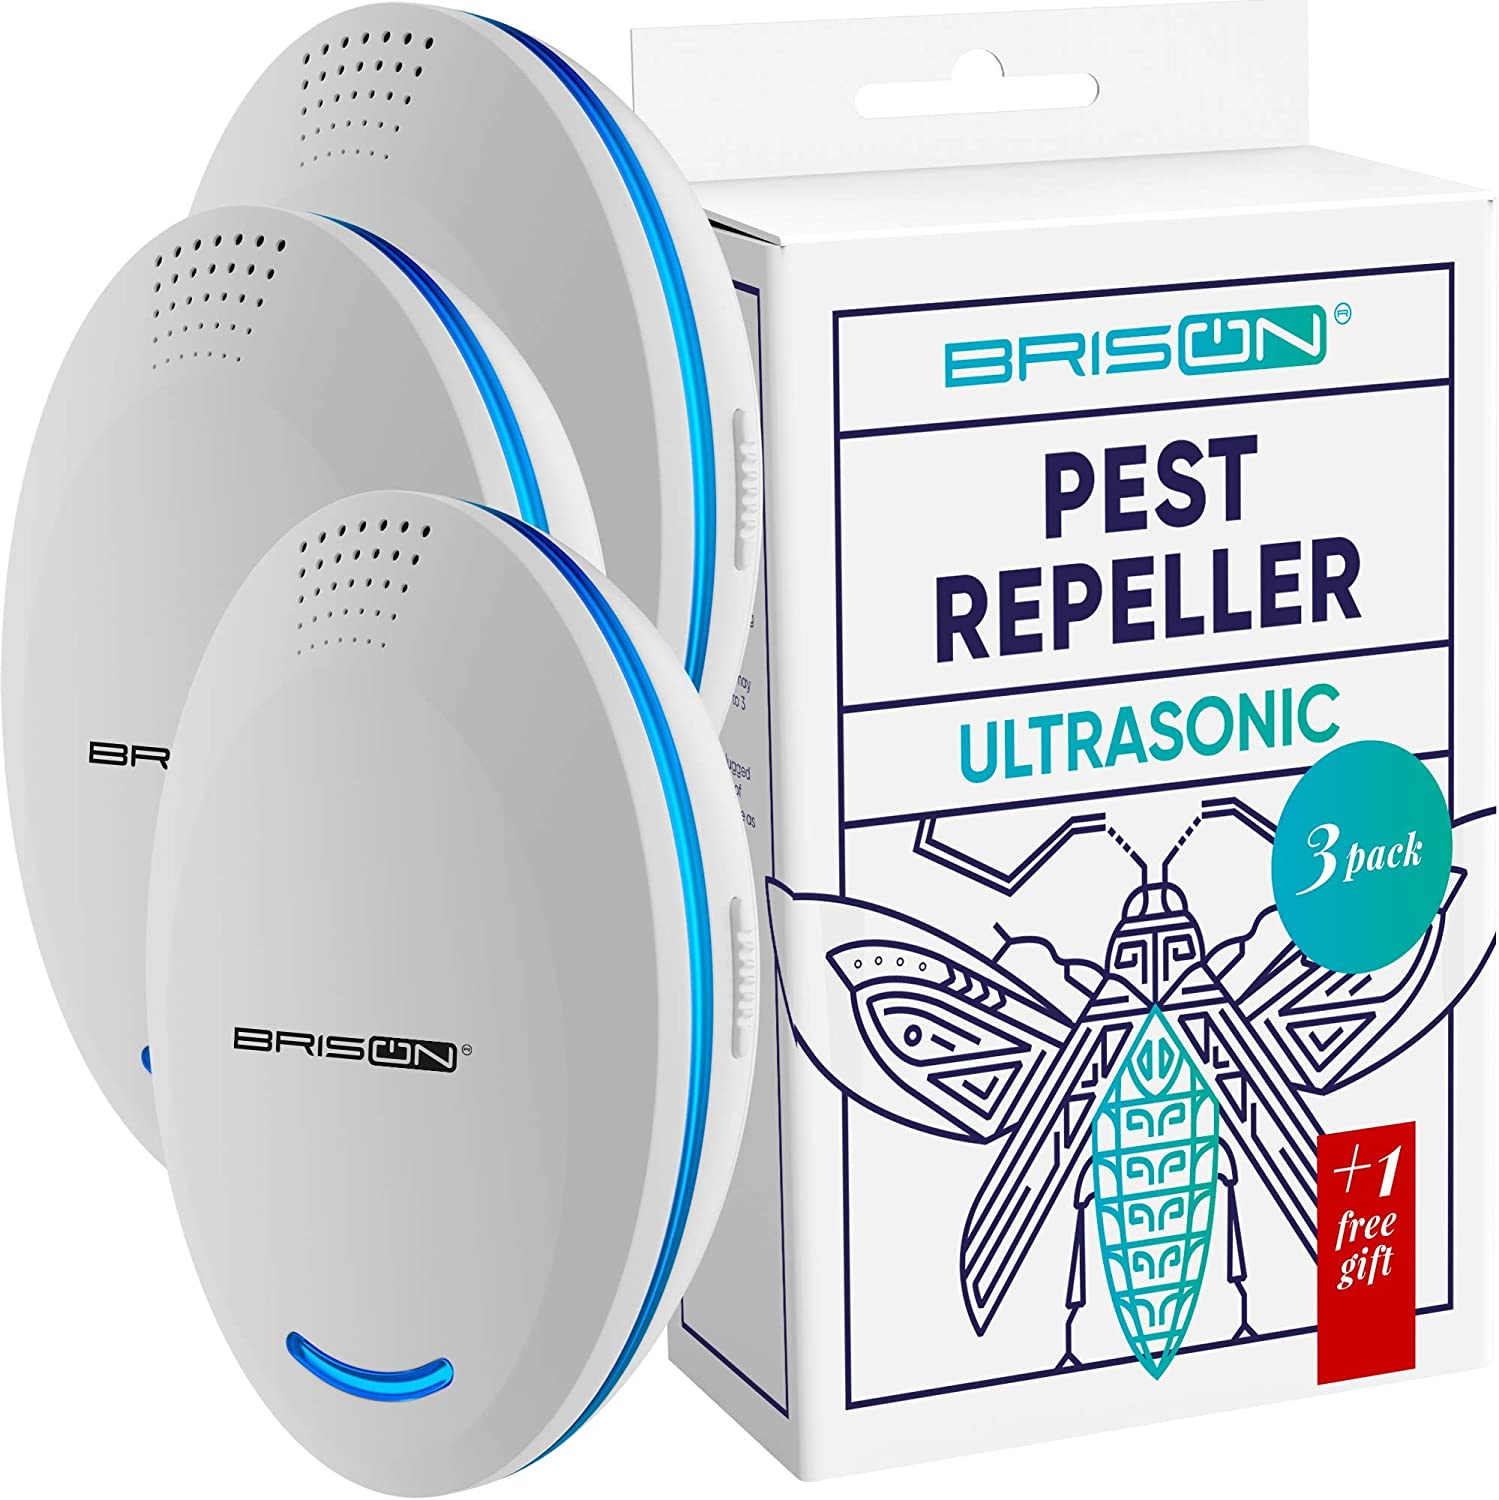 Ultrasonic Pest Repeller Plug-in Control Electronic Insect Repellent Gets Rid Mosquito Bed Bugs Roach Spiders Fleas Mice Ants Fruit Fly [3+1-Pack]